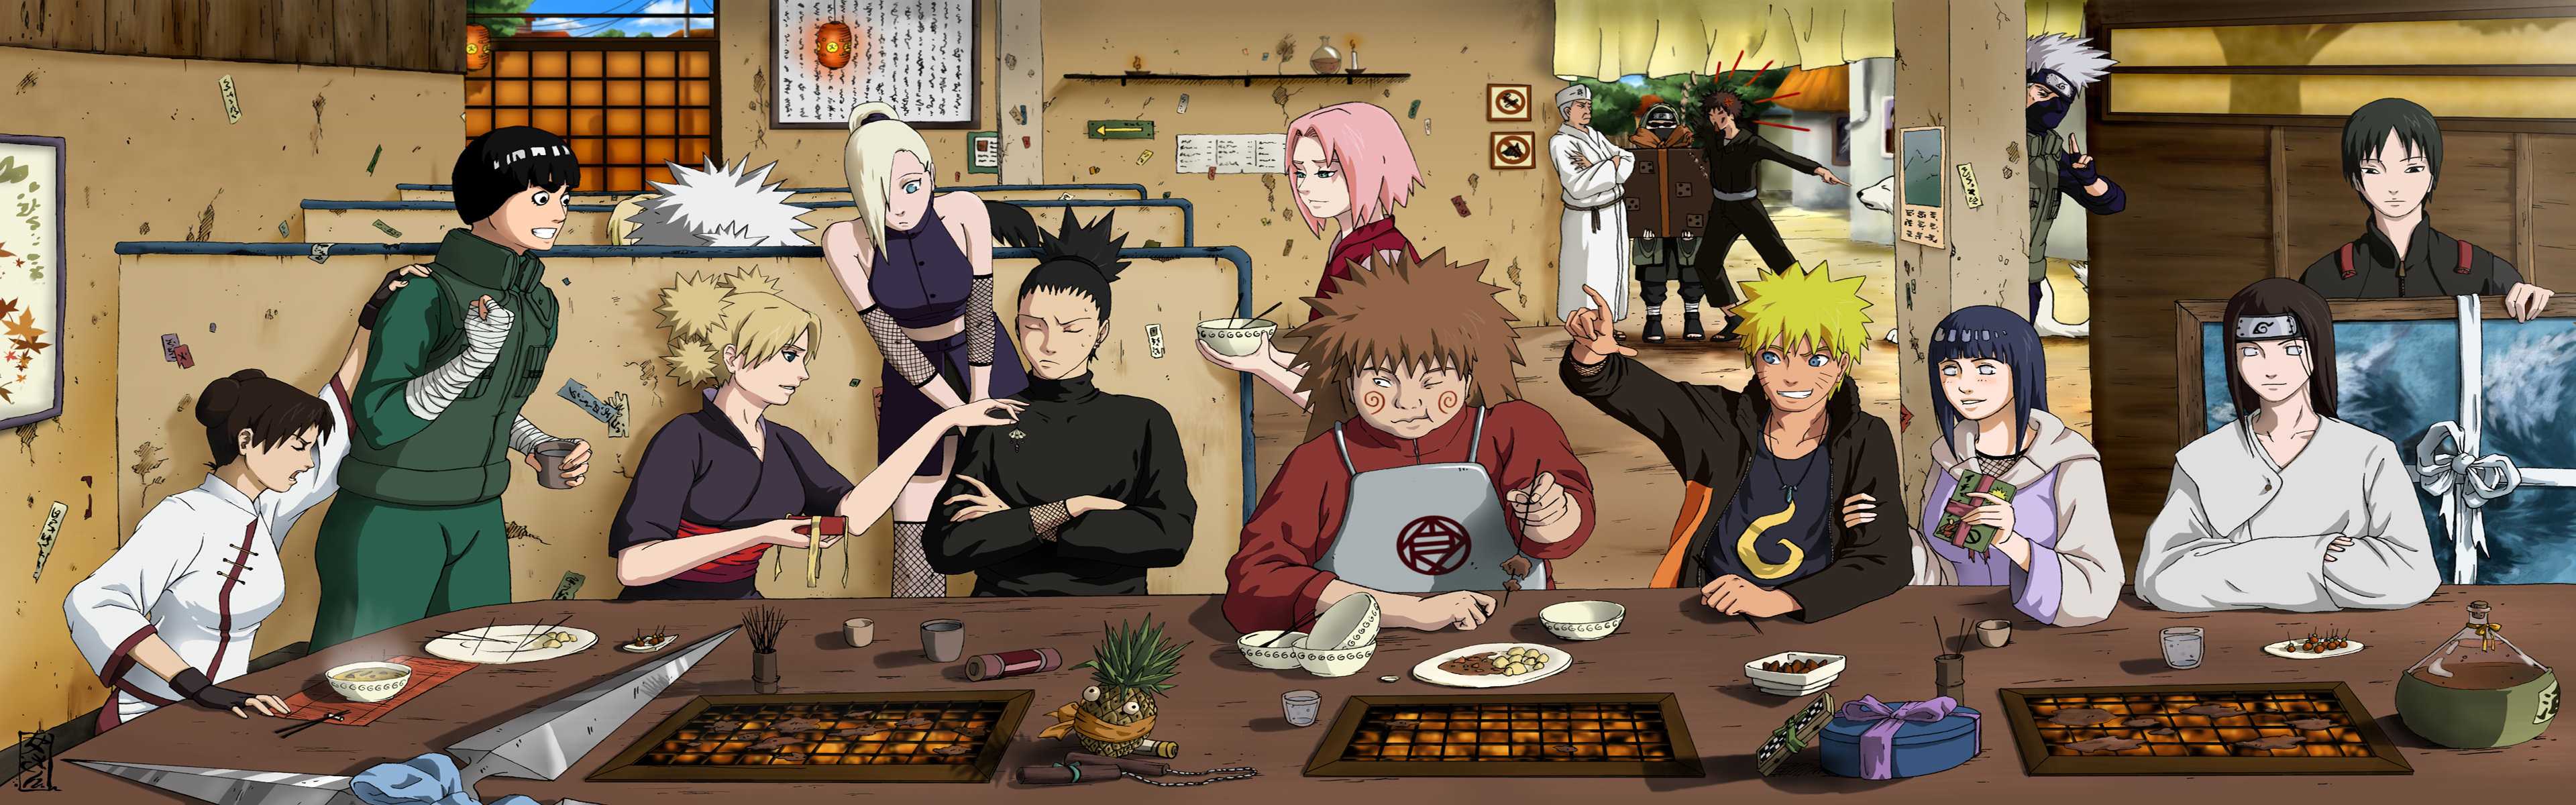 Cool Wallpaper Naruto Dual Screen - naruto-background-dual-monitor-3840x1200-396674  You Should Have_798663.jpg